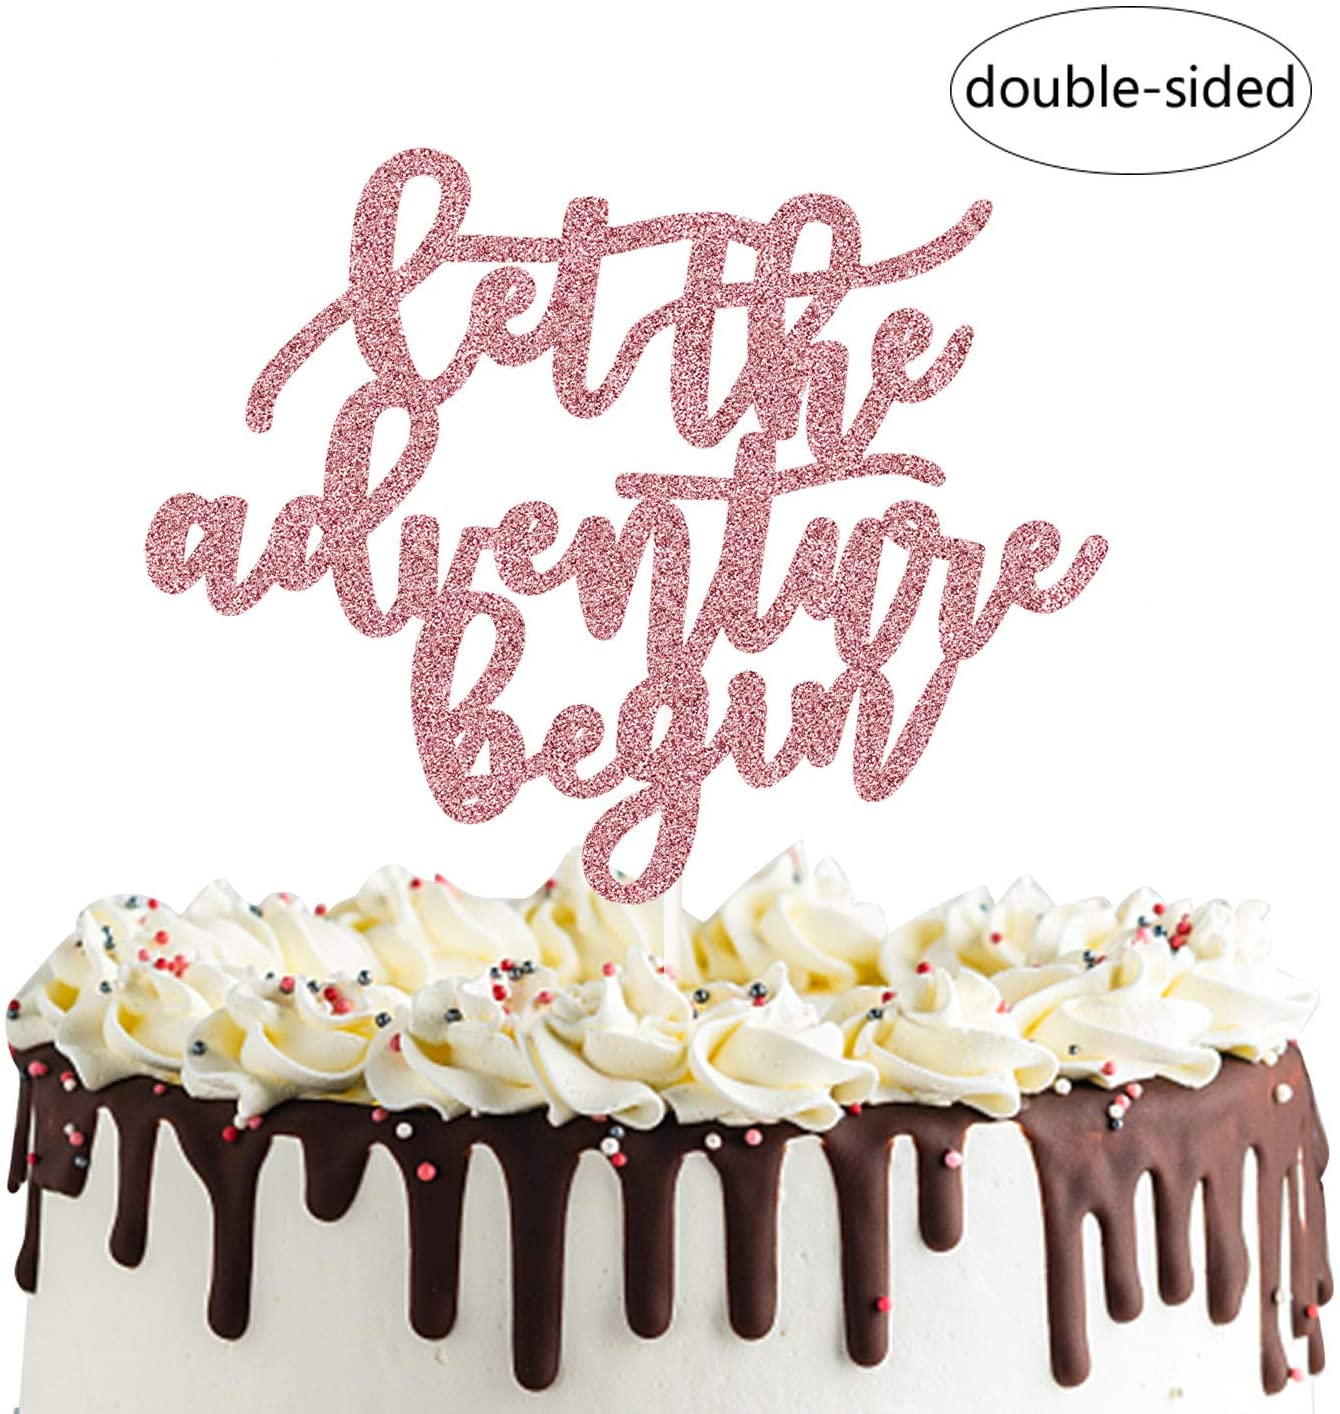 Let the Adventure Begin Cake Topper for Going Away Travel Themed Graduation Party Decorations